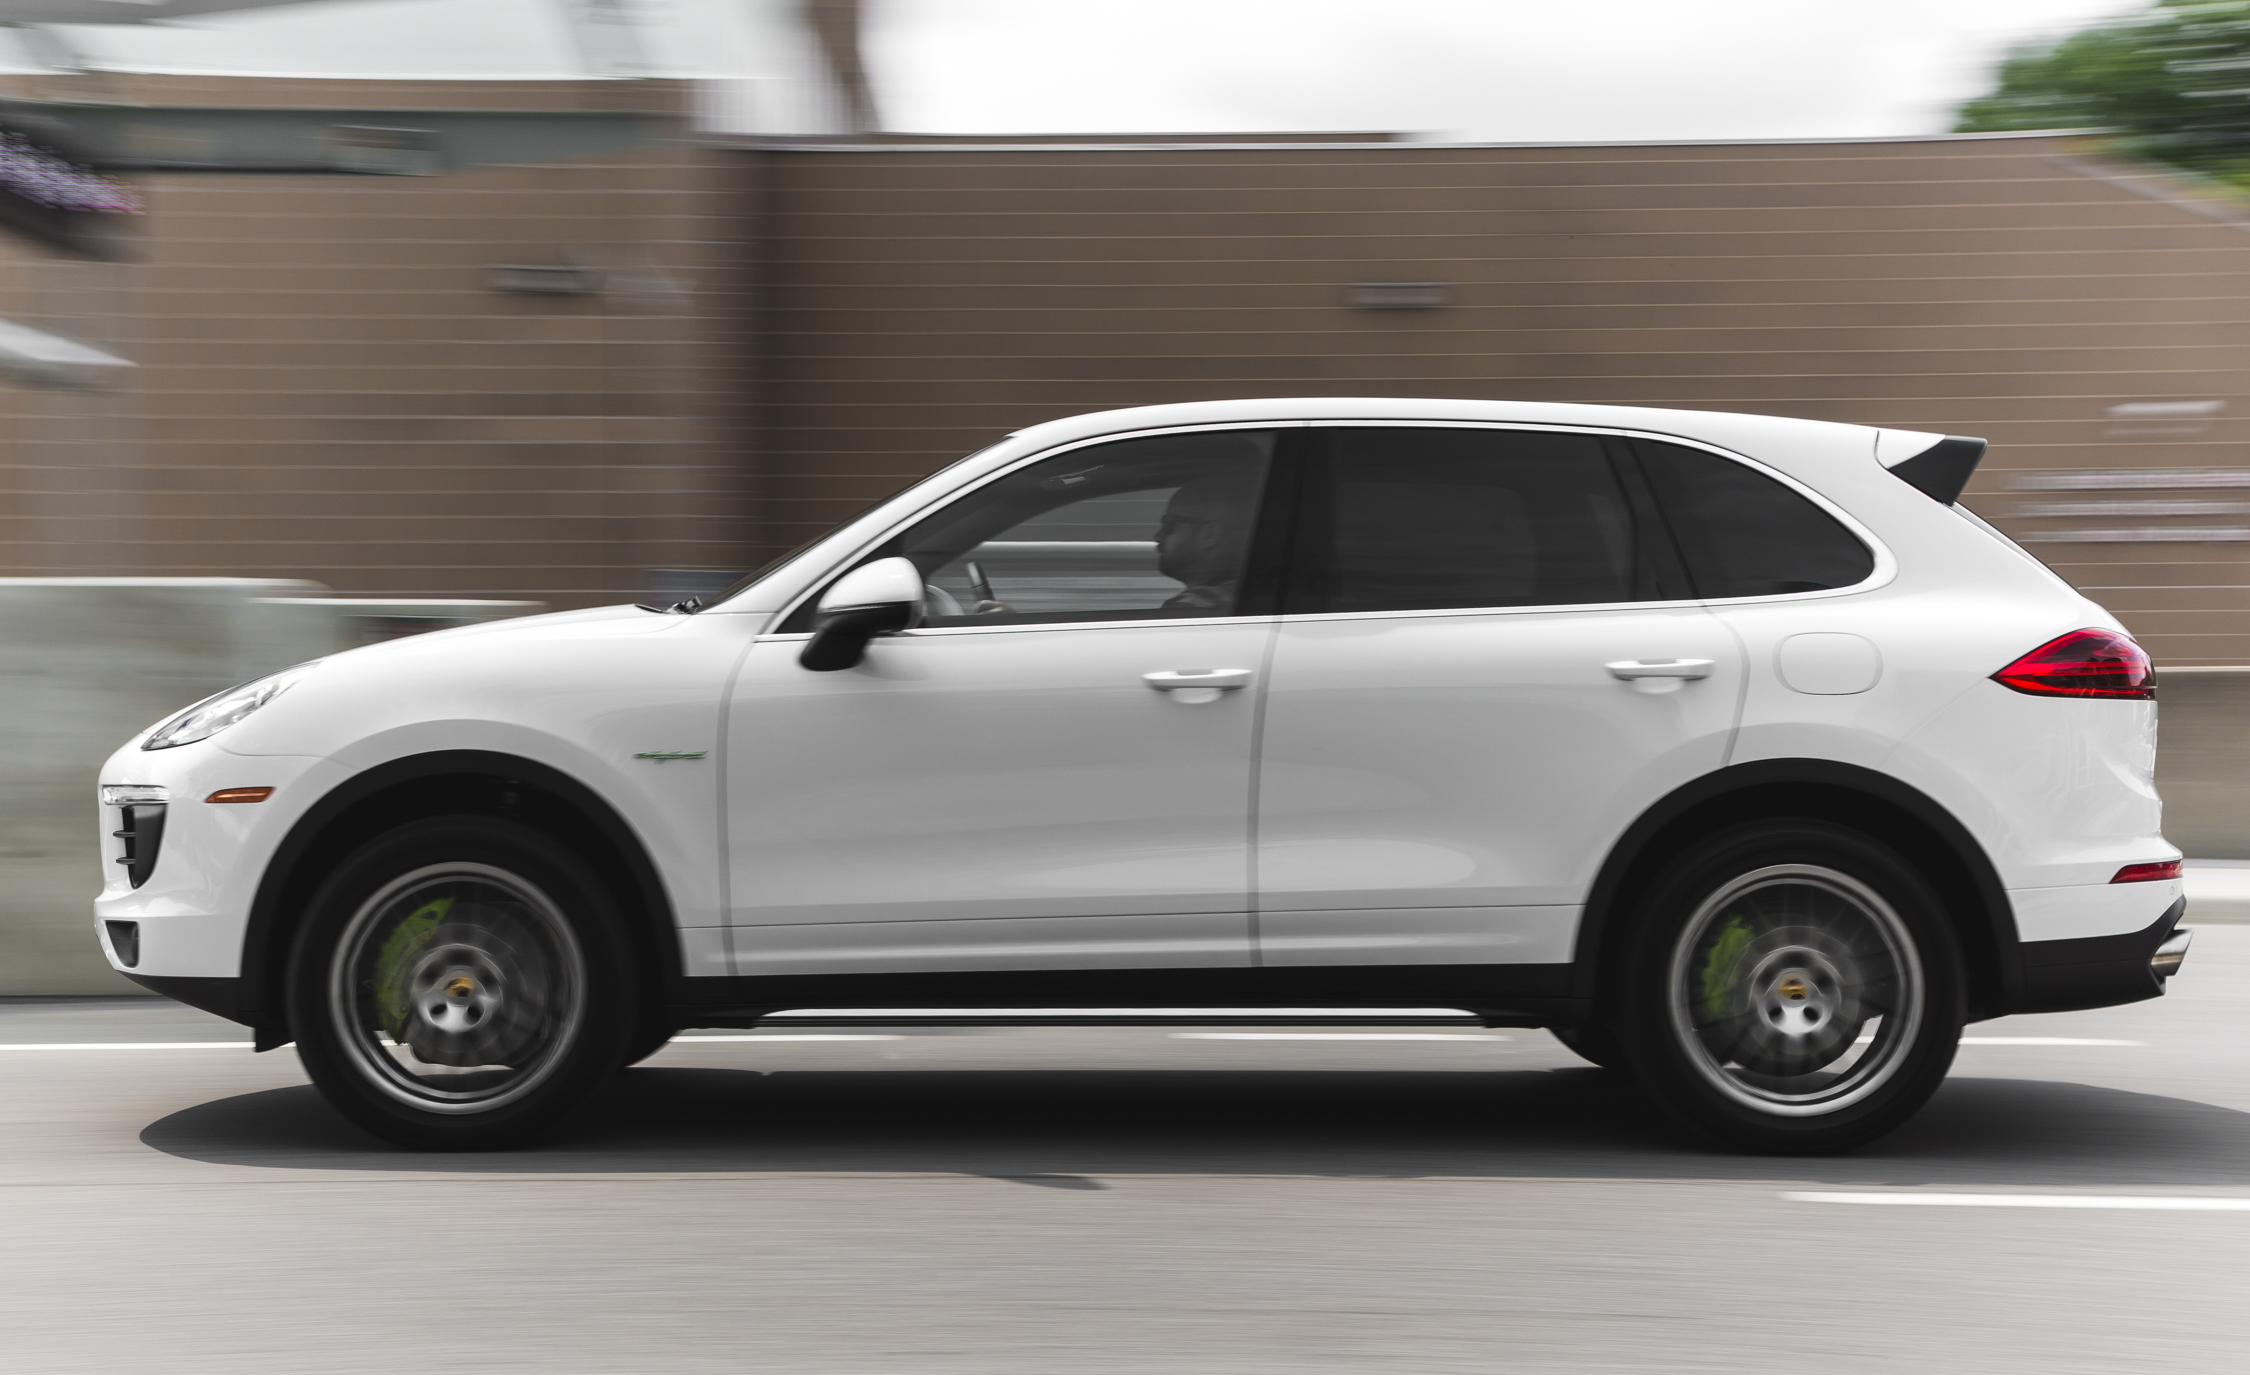 2015 Porsche Cayenne S E-Hybrid Exterior Right Side